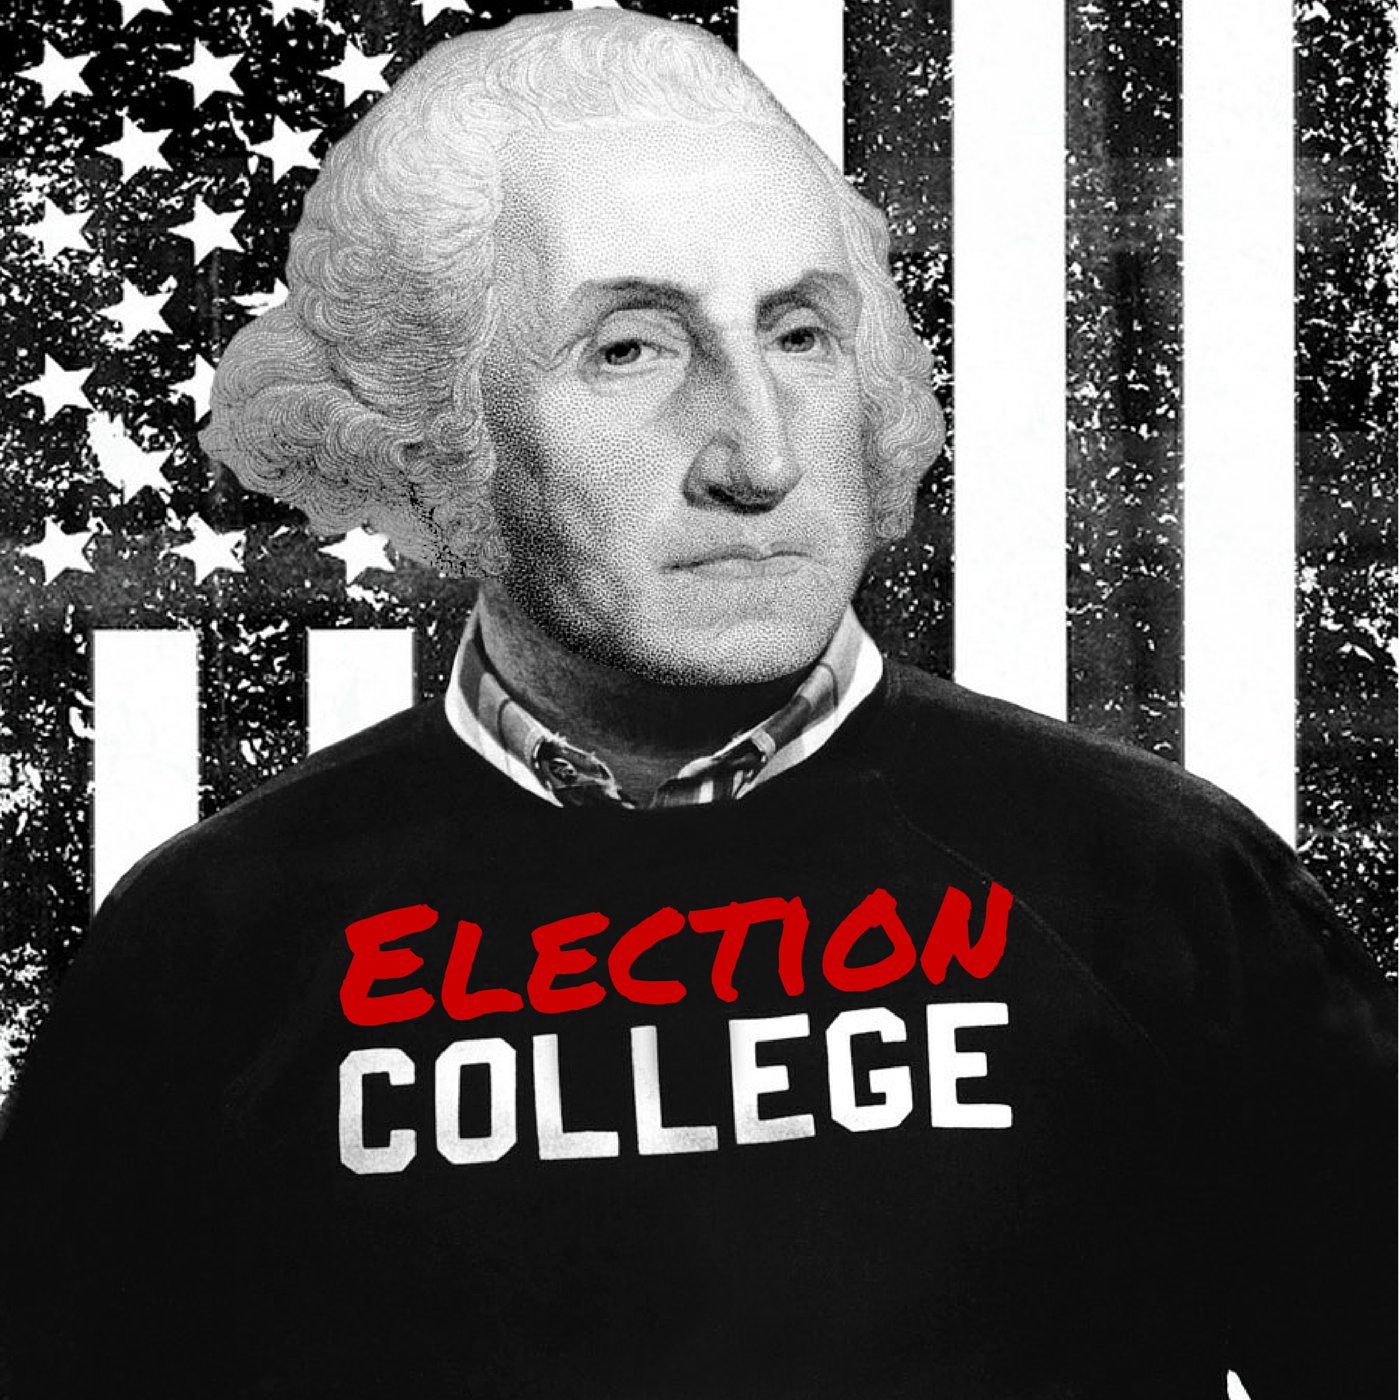 Faithless Electors and the Electoral College | Episode #150 | Election College: United States Presidential Election History